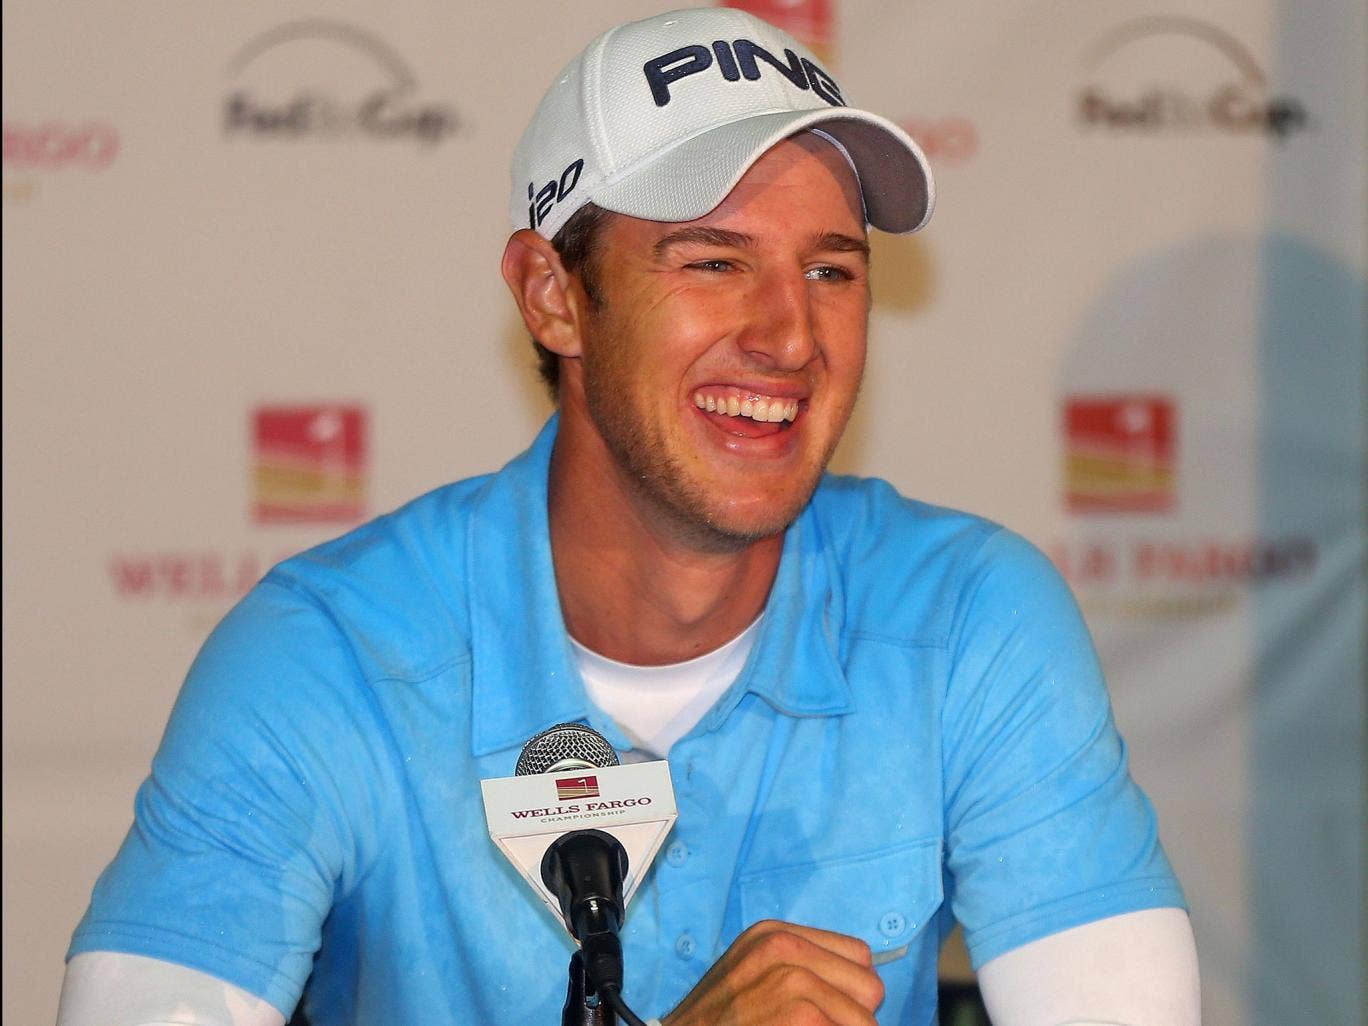 The American Derek Ernst has climbed 1,084 places up the world rankings after winning the Wells Fargo Championship